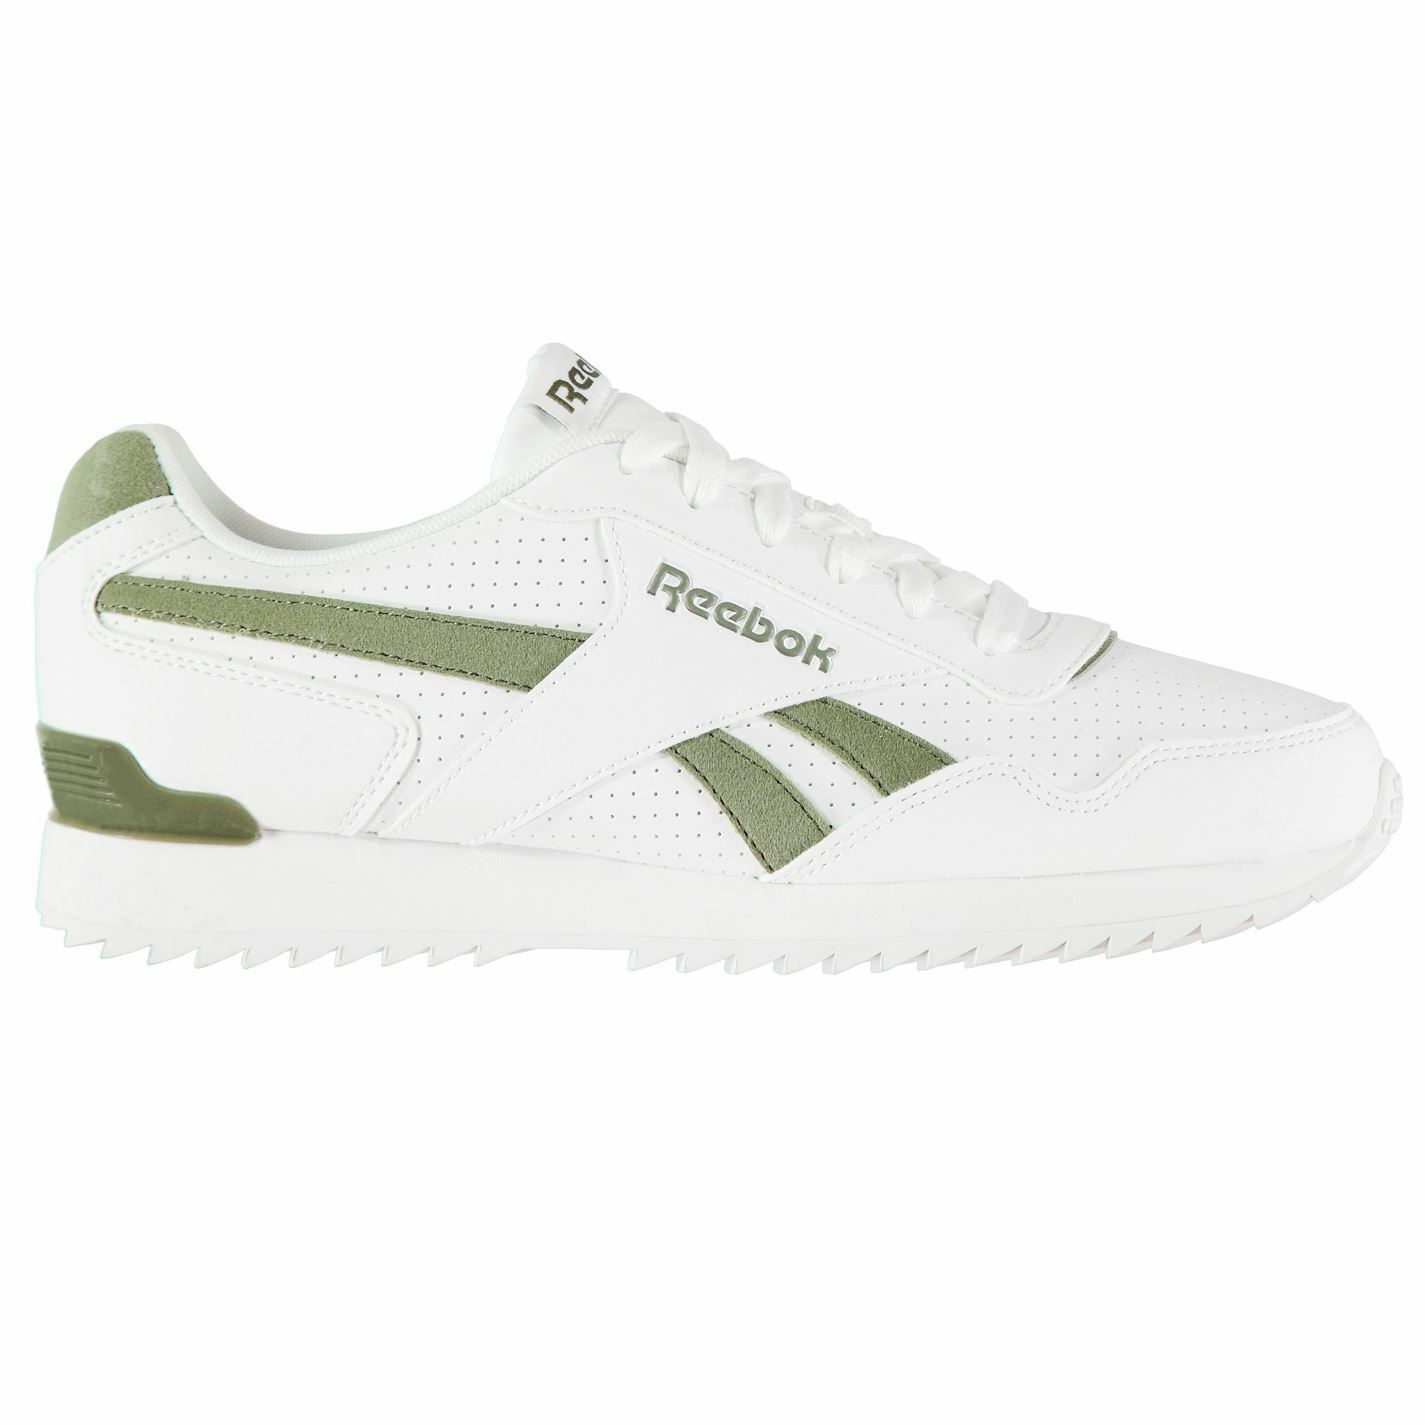 Reebok Royal Glide Ripple Clip Trainers Mens White Green Sports shoes Sneakers